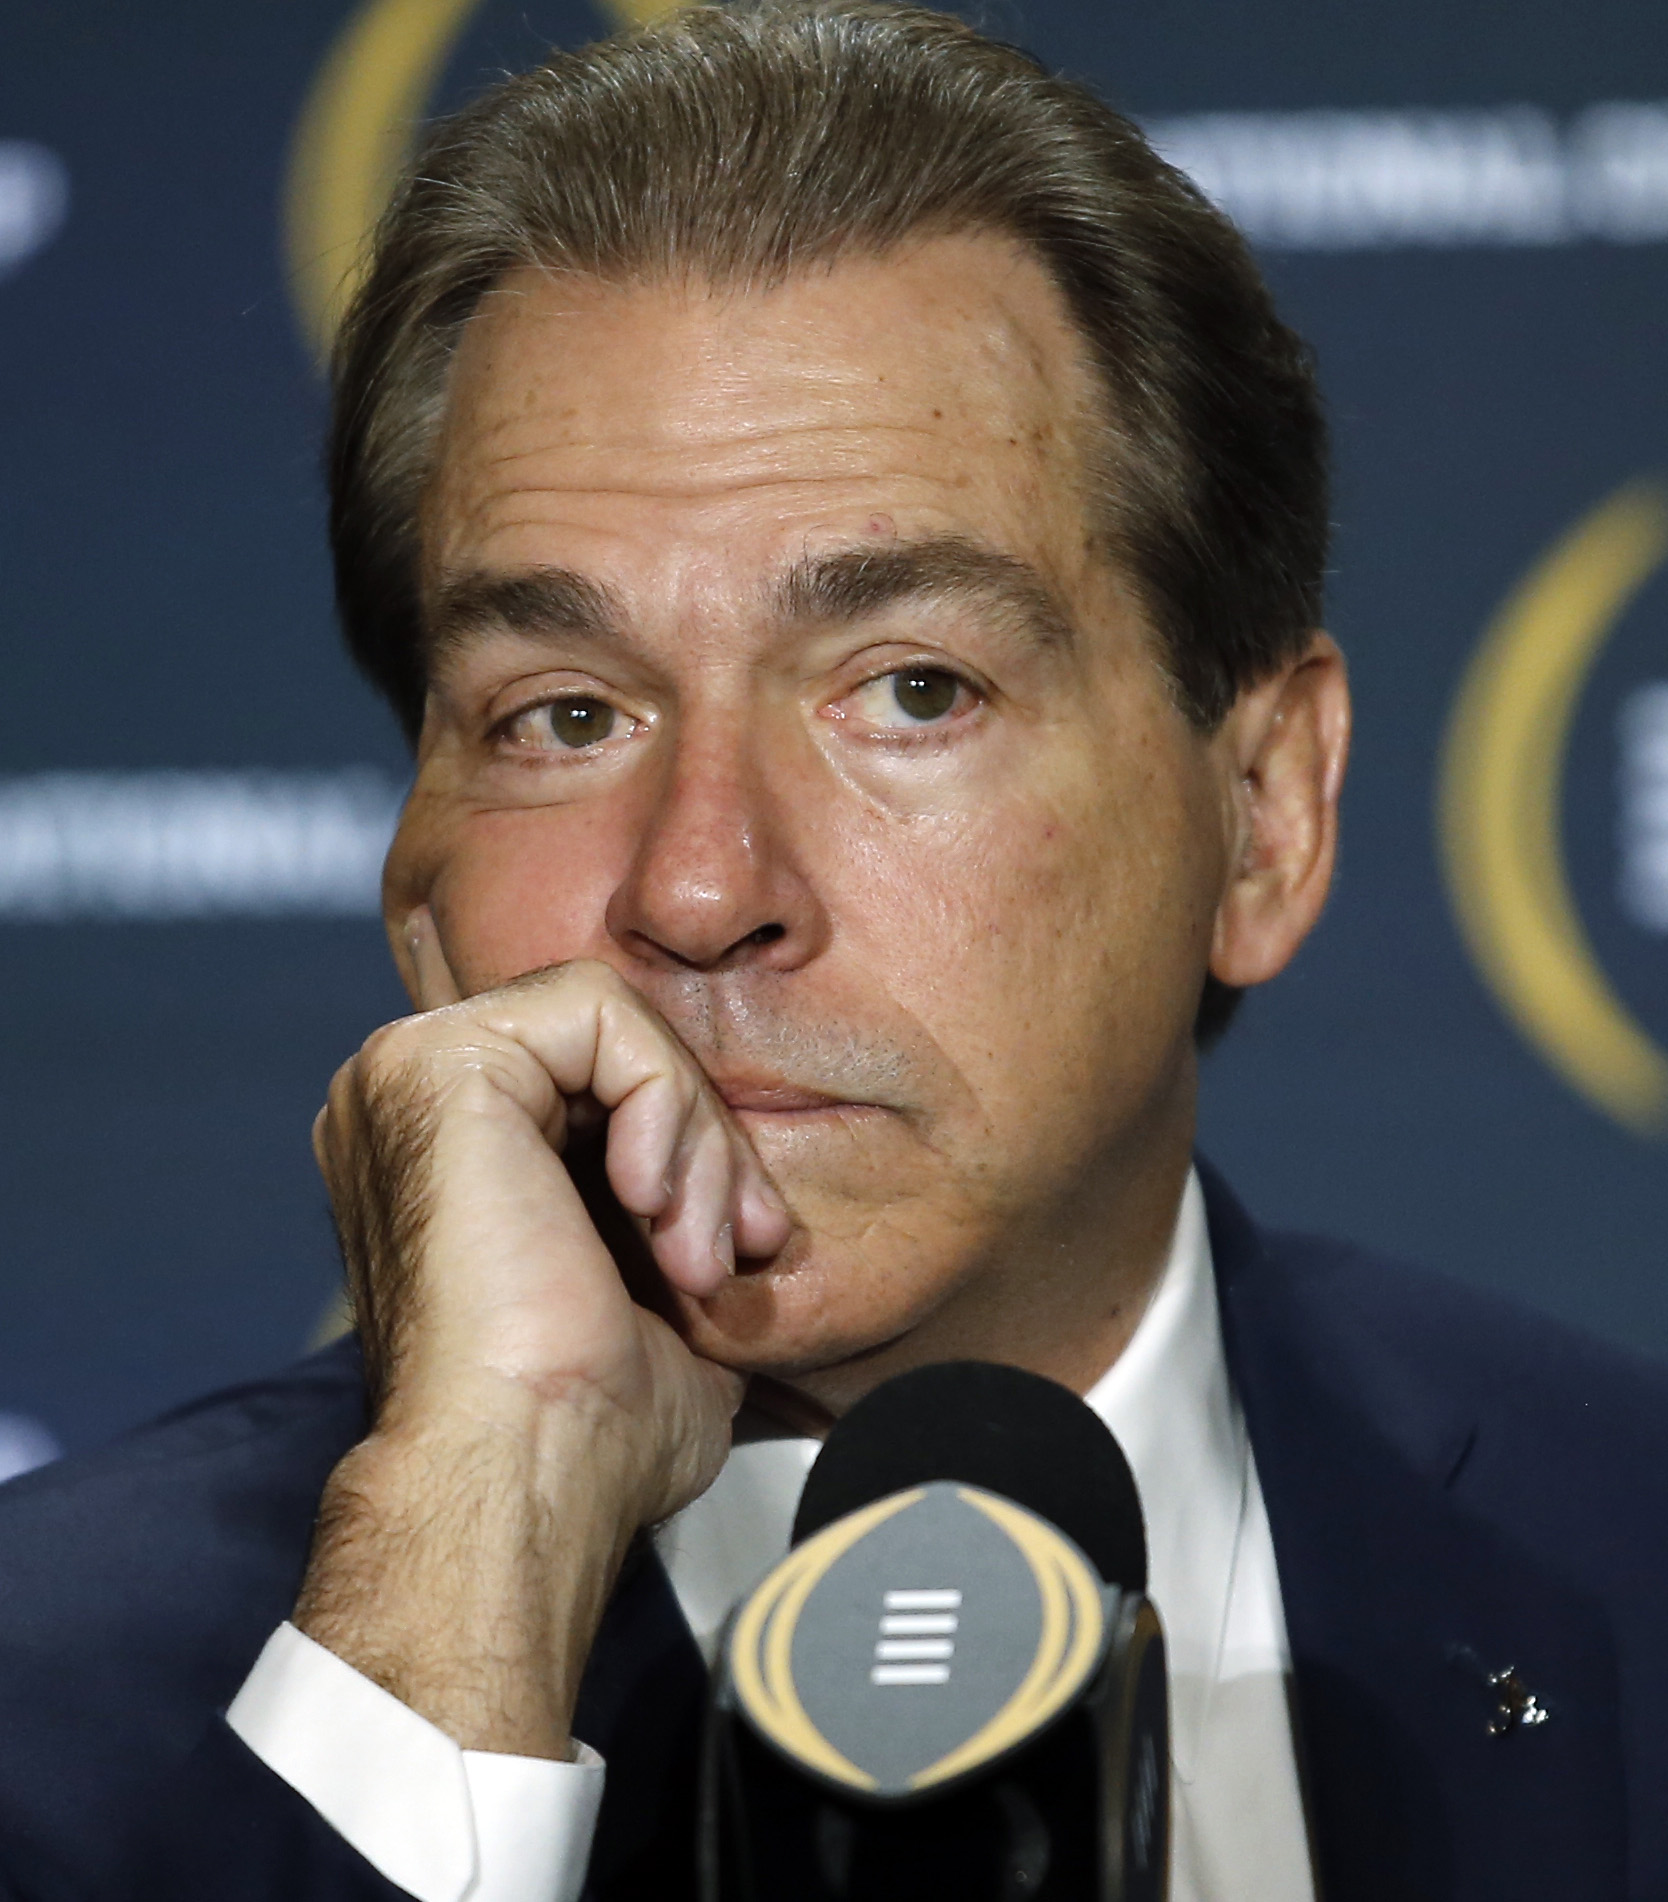 Alabama head coach Nick Saban listens during a news conference for the NCAA college football playoff championship game Sunday, Jan. 10, 2016, in Glendale, Ariz. (AP Photo/Morry Gash)